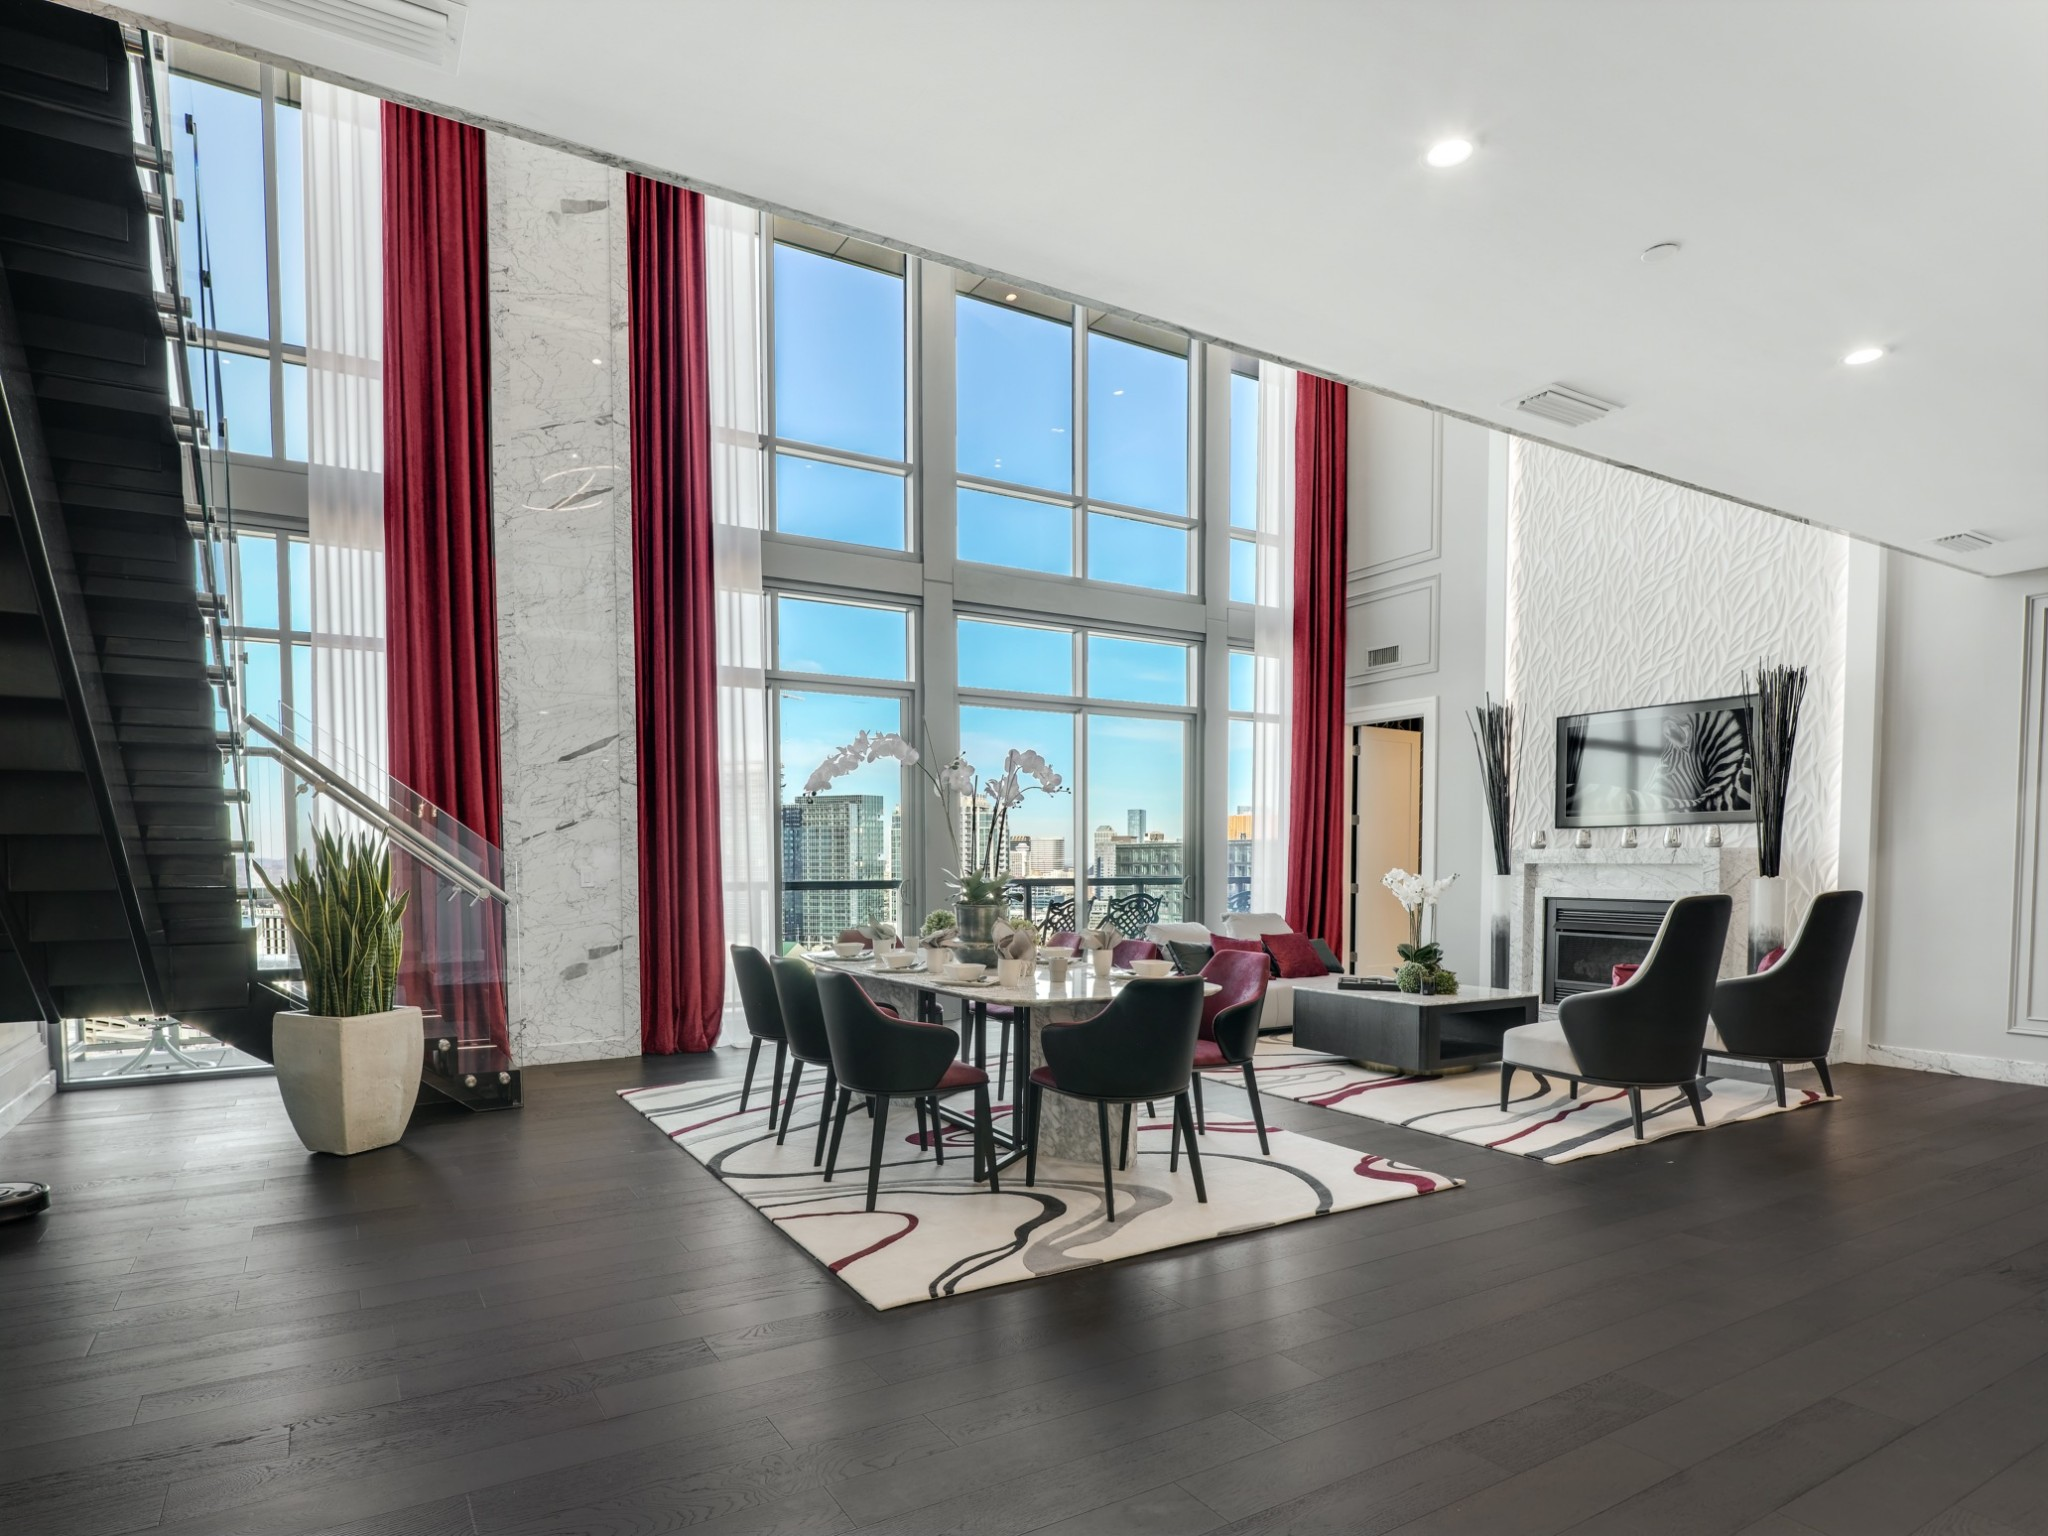 Multiple Offers. Offer Deadline is 10/11 at 6pm and response by 10/12 @ 10am. Spectacular views and unparalleled luxury unfolds in this amazing two-story Penthouse. The owner spared no expense reimagining and renovating this incredible space. Smart Home Automation, Italian Carrara Marble, and comes furnished with custom furniture pieces, draperies, and artwork. Every room boasts sweeping sunset vistas. PH Separate Parking Garage & Storage unit is included. Furnished.